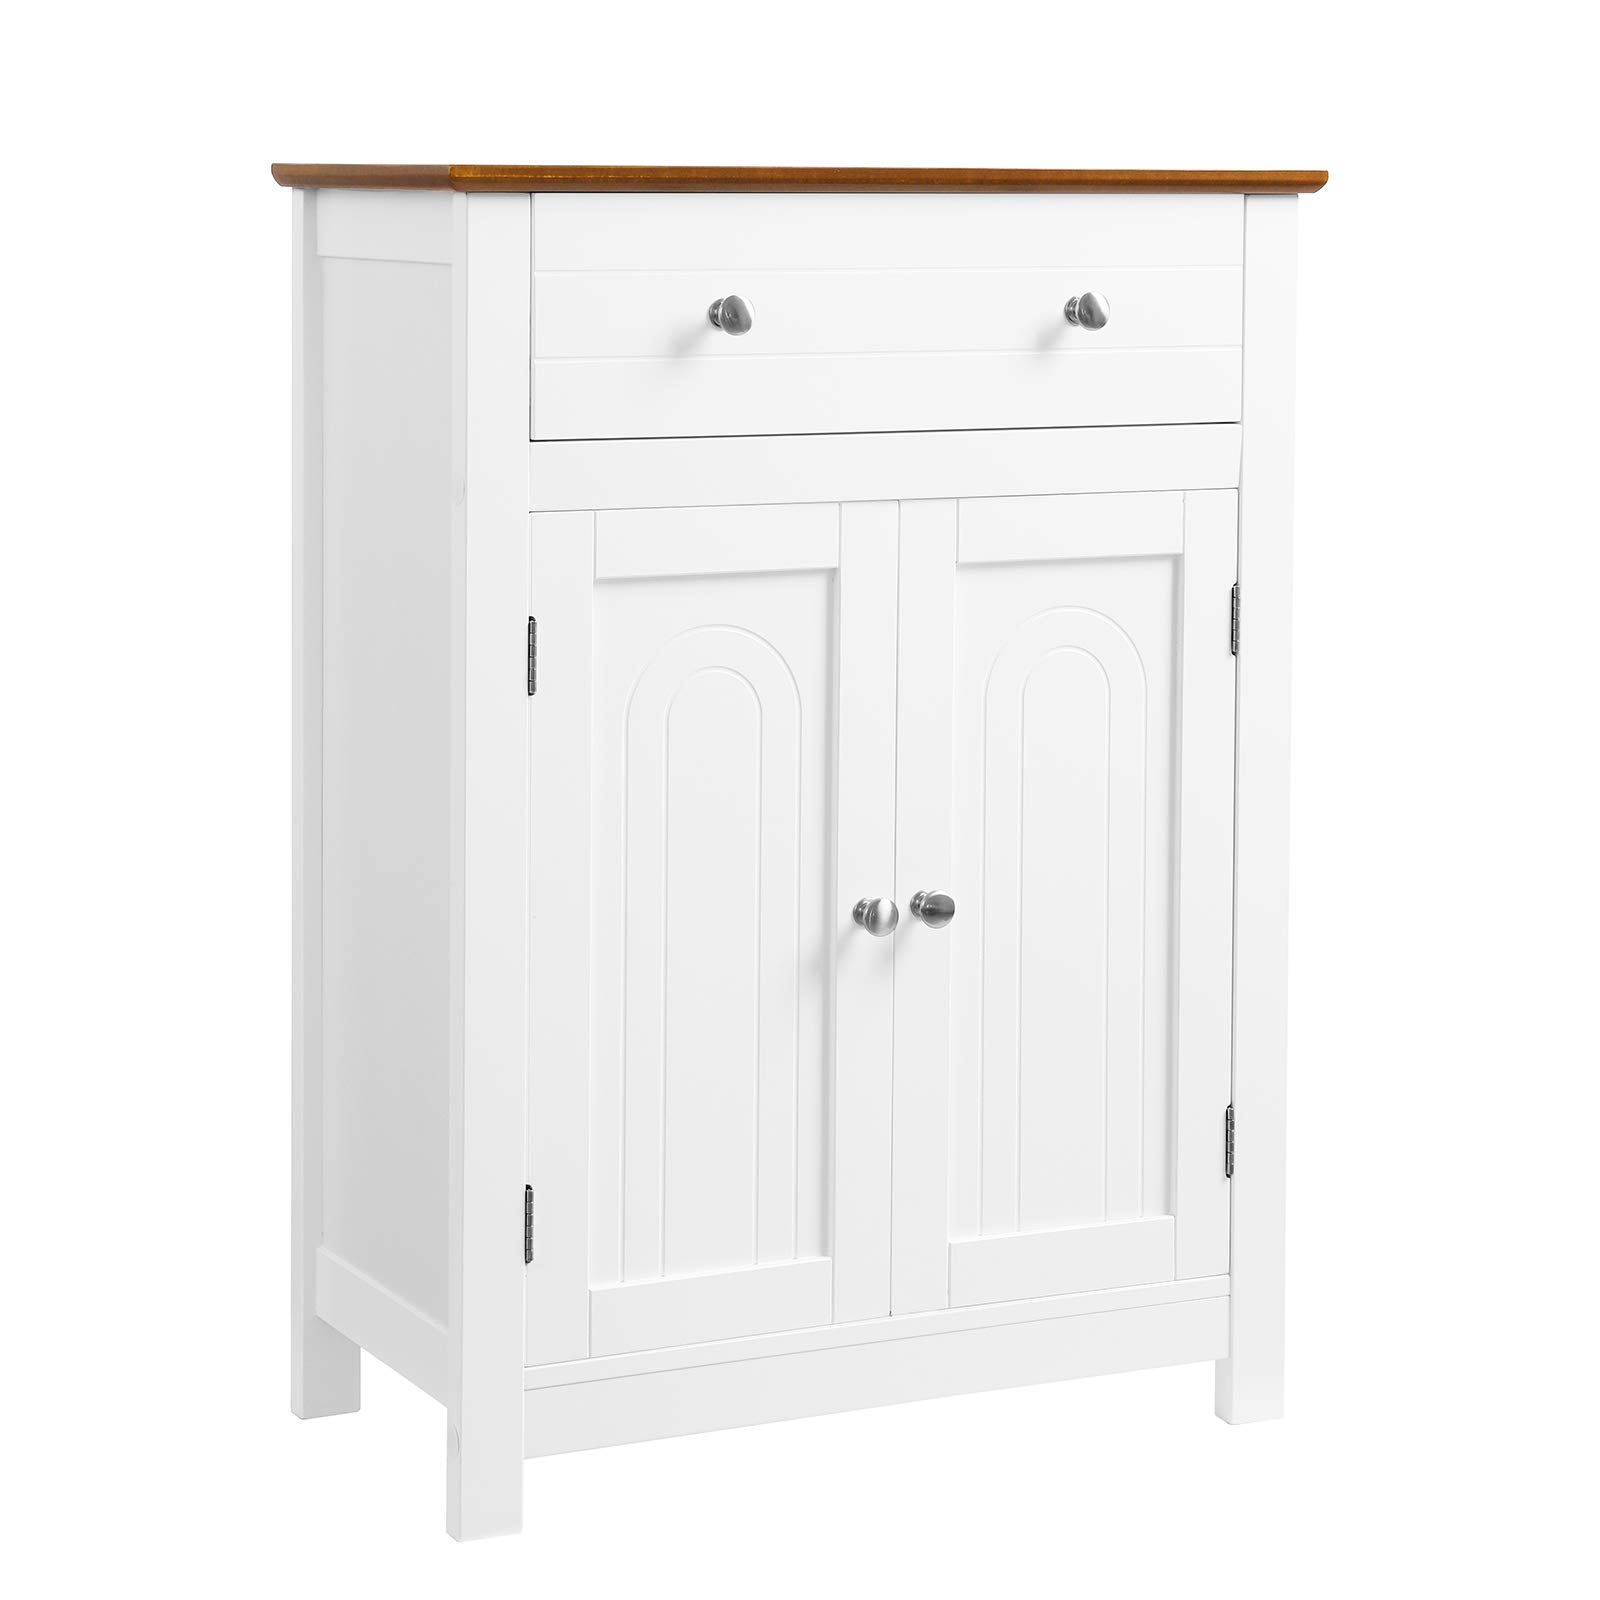 VASAGLE Free Standing Bathroom Storage Cabinet with Drawer and Adjustable Shelf, Kitchen Cupboard, Wooden Entryway Floor Cabinet, 23.6 x 11.8 x 31.5 Inches, White & Brown UBBC62WT by VASAGLE